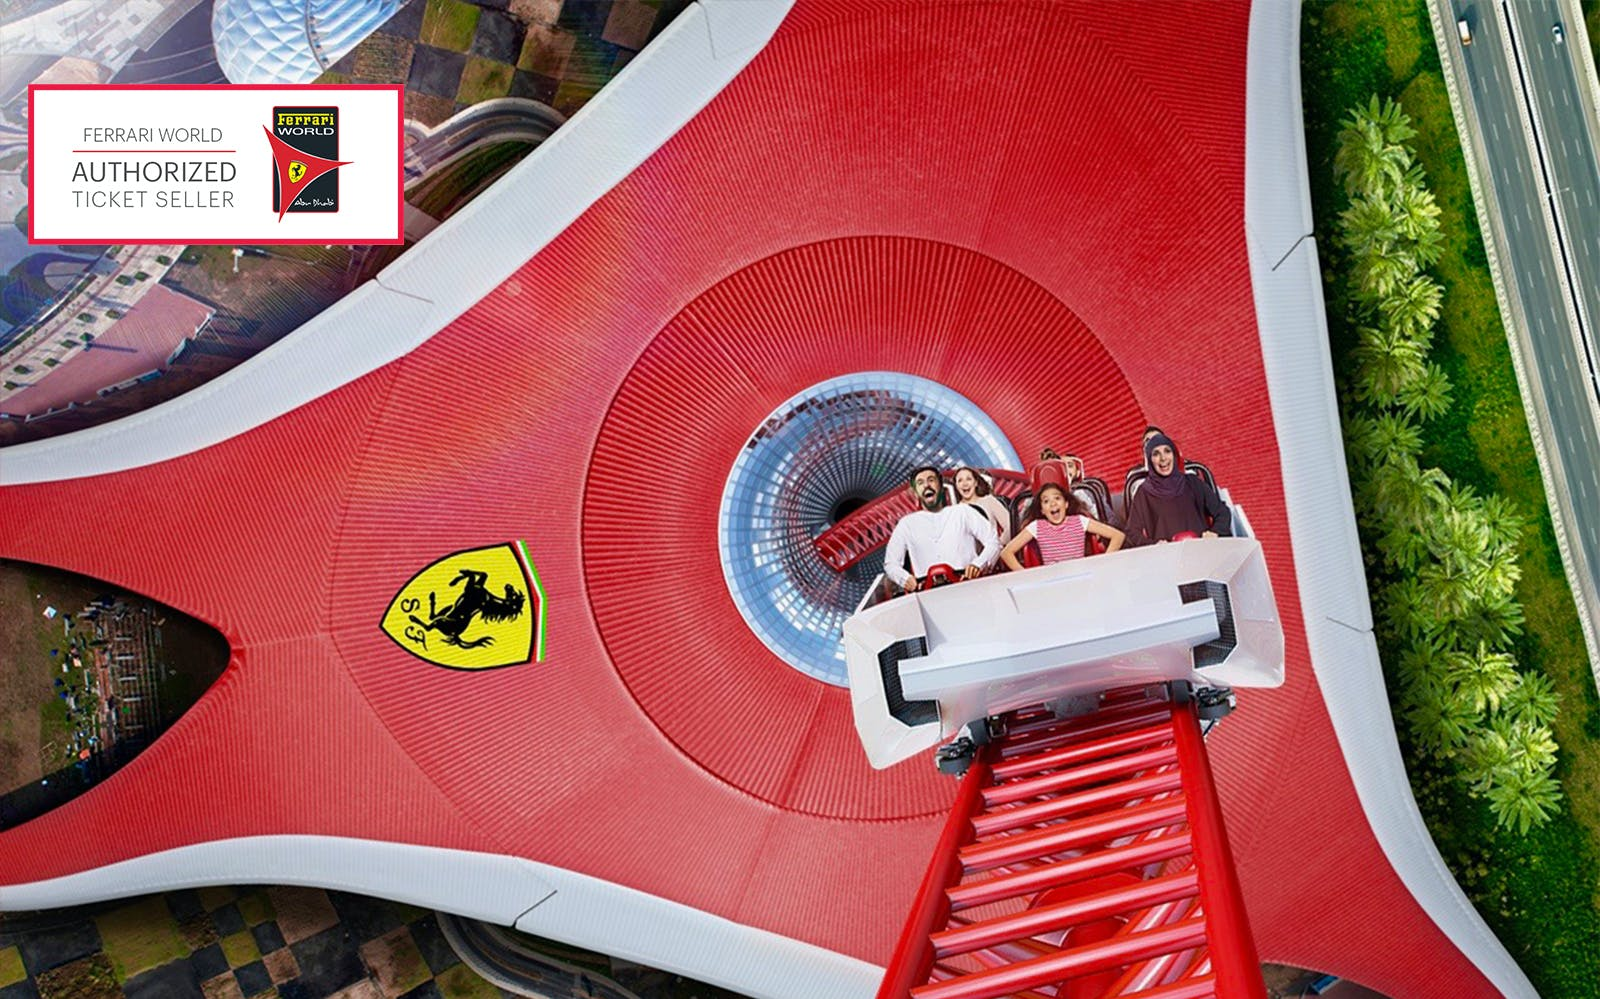 ferrari world tickets with transfers-2